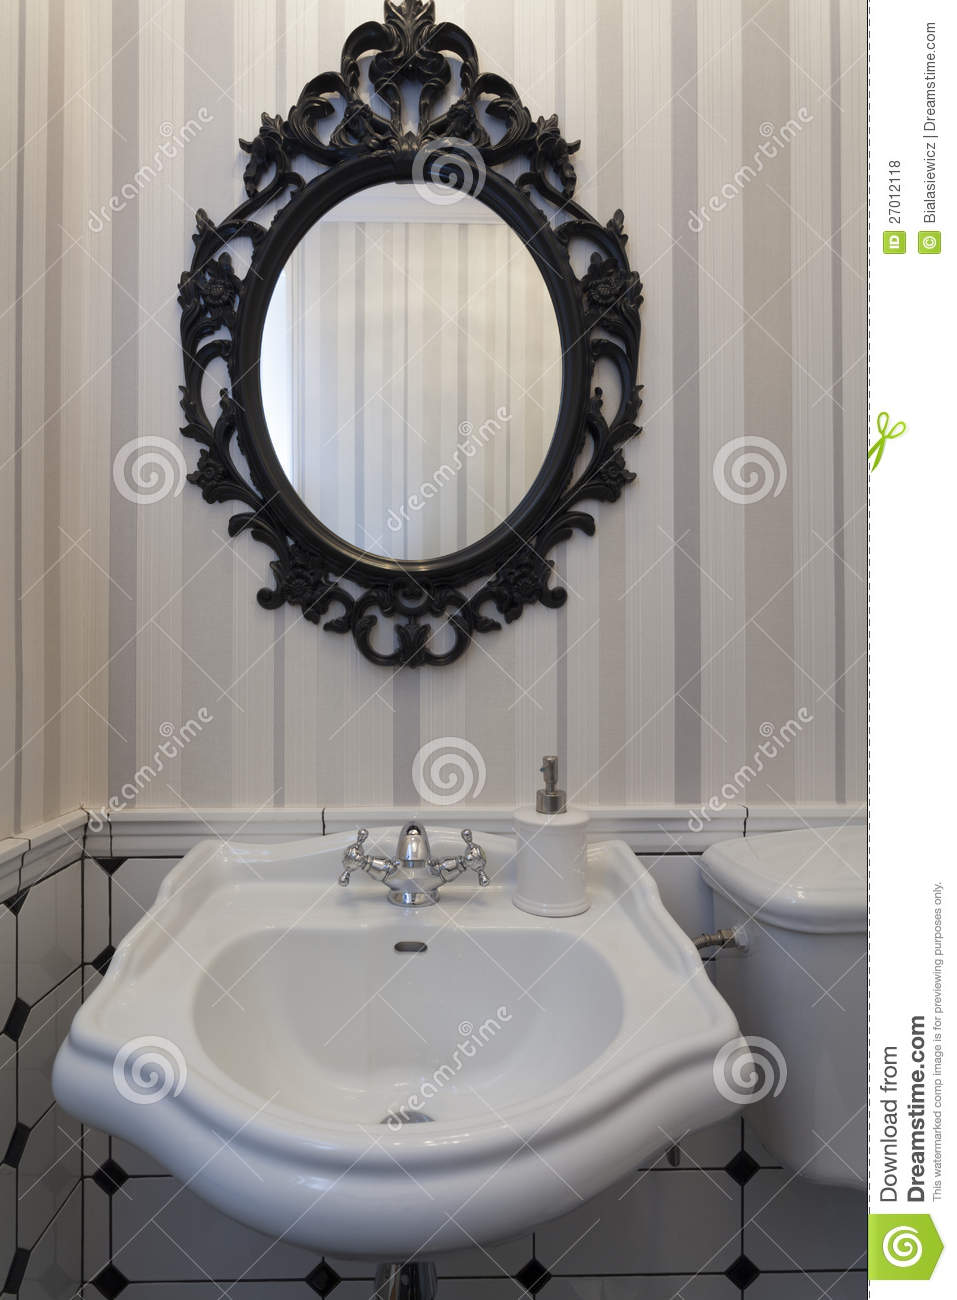 Vintage Toilet With A Mirror Royalty Free Stock Photos